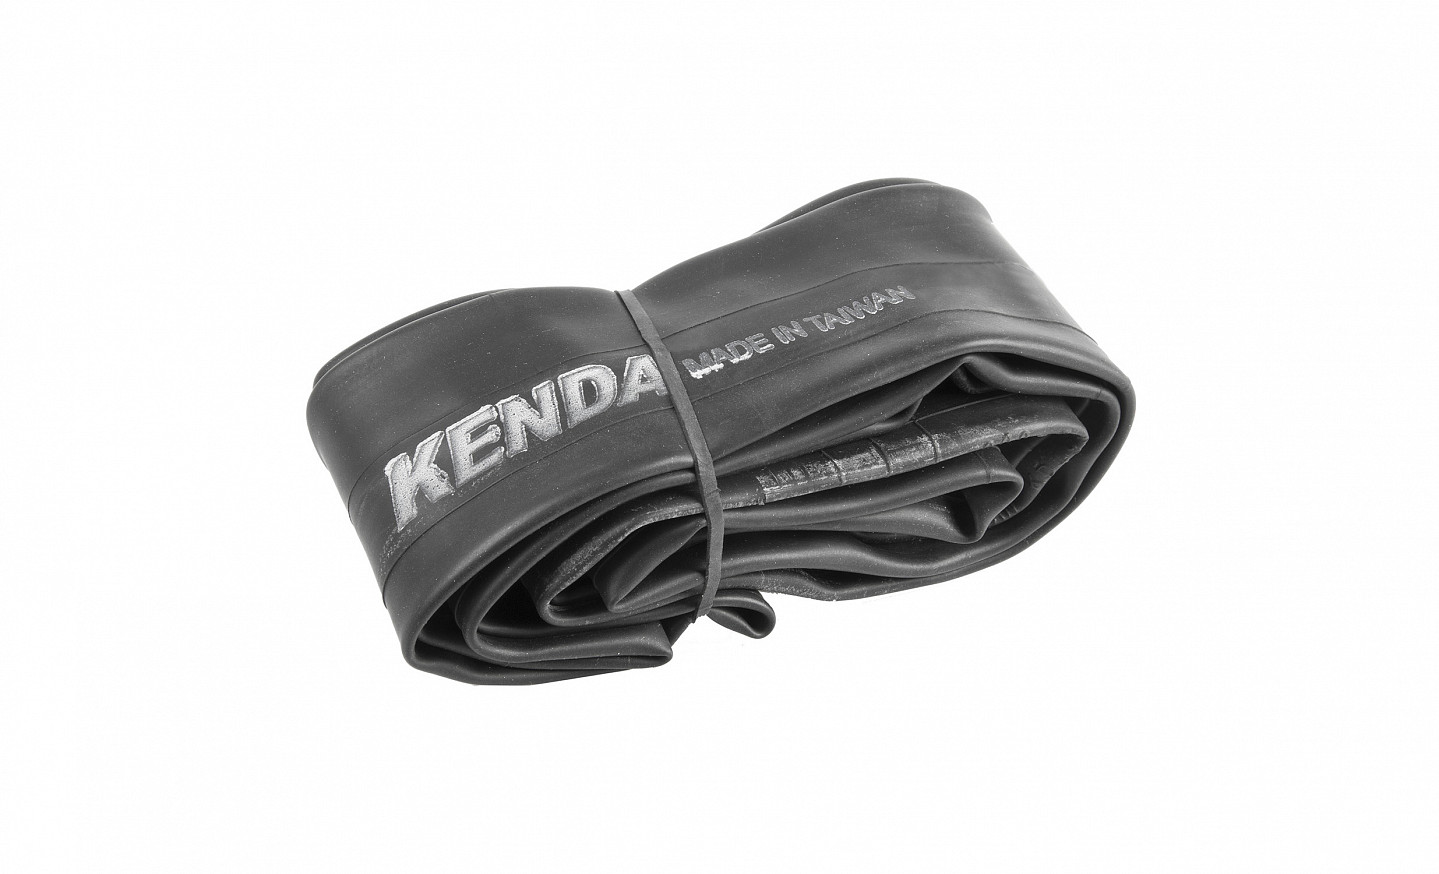 "KENDA 18 x 1.75 - 2.125"" bicycle tube"